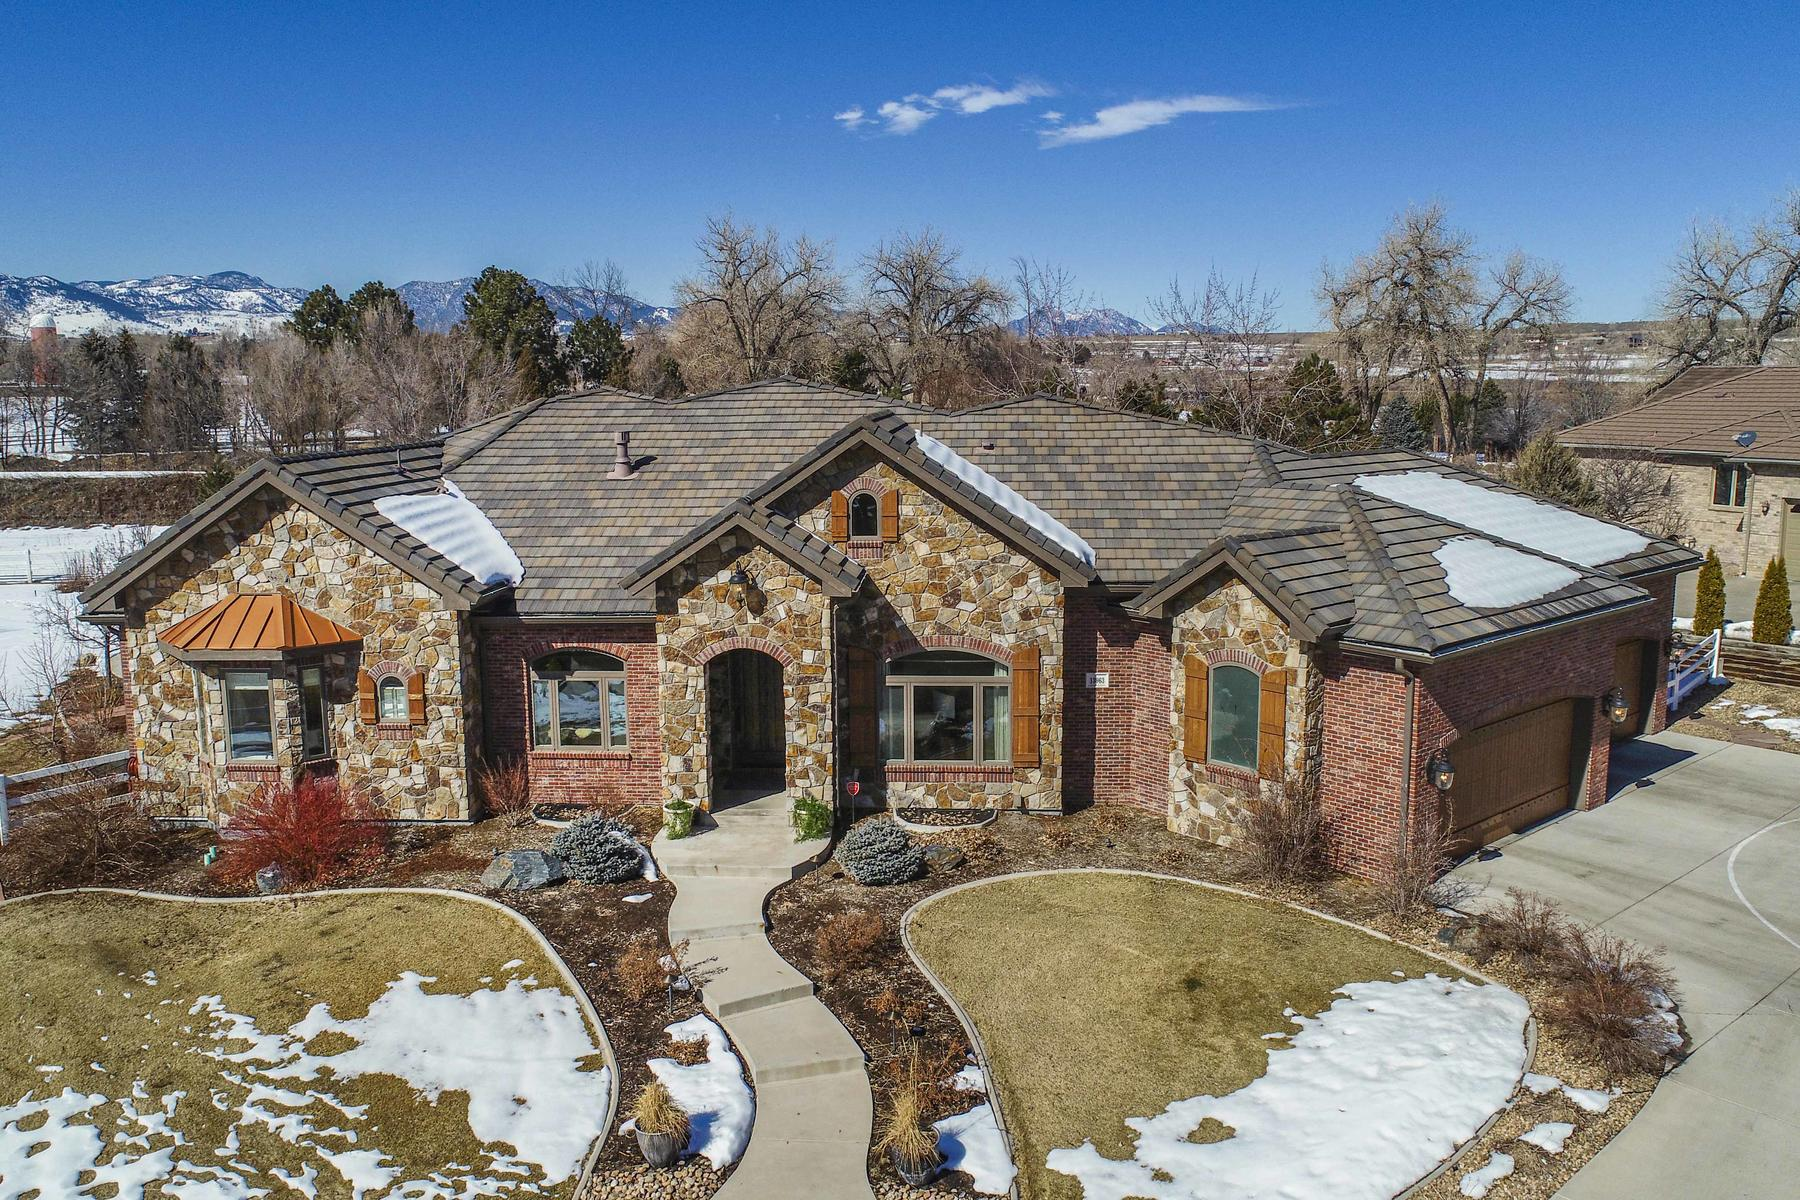 Single Family Homes for Active at Ultimate Luxury Meets Practical Living 13963 W 76th Lane Arvada, Colorado 80005 United States